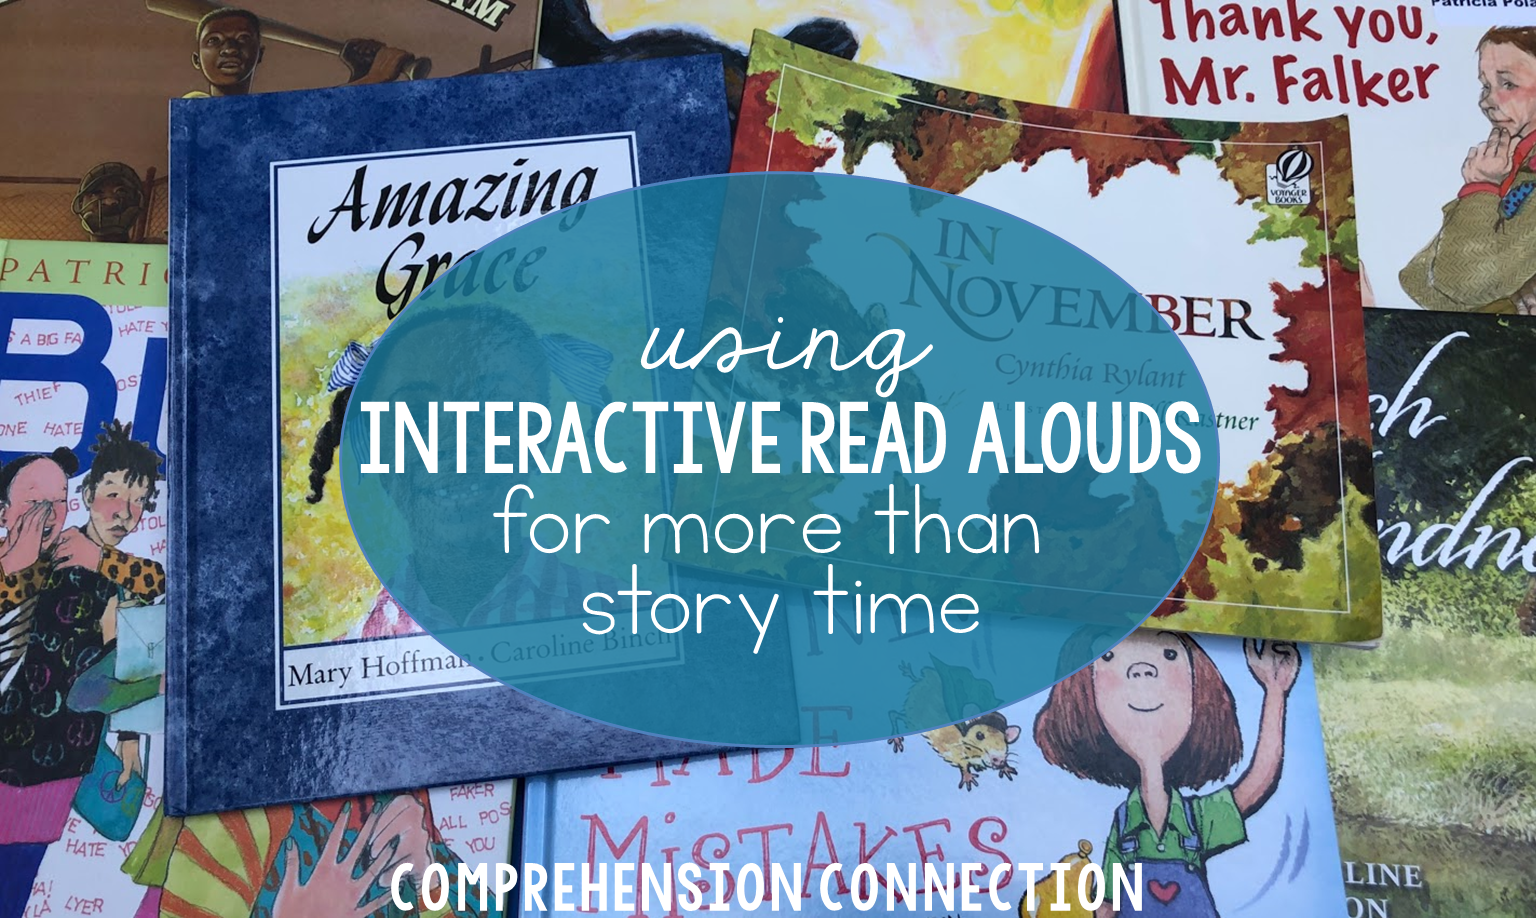 Using interactive read alouds for more than story time is very beneficial to students. In this post, ideas are shared on how students benefit with examples.